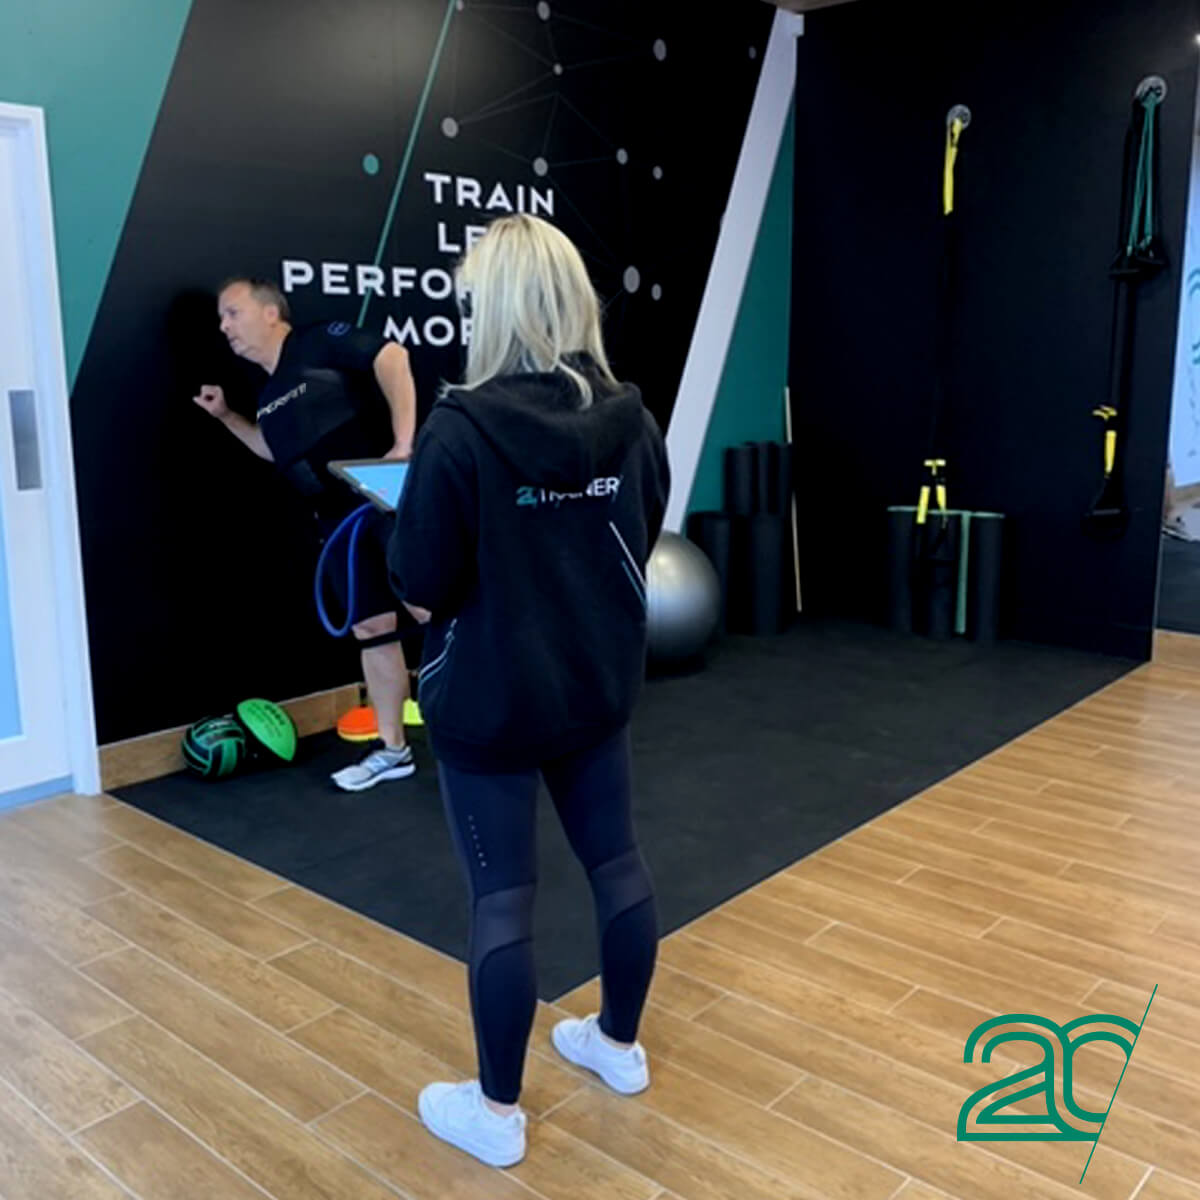 20PerFit Personal Trainer Doing Training her Client